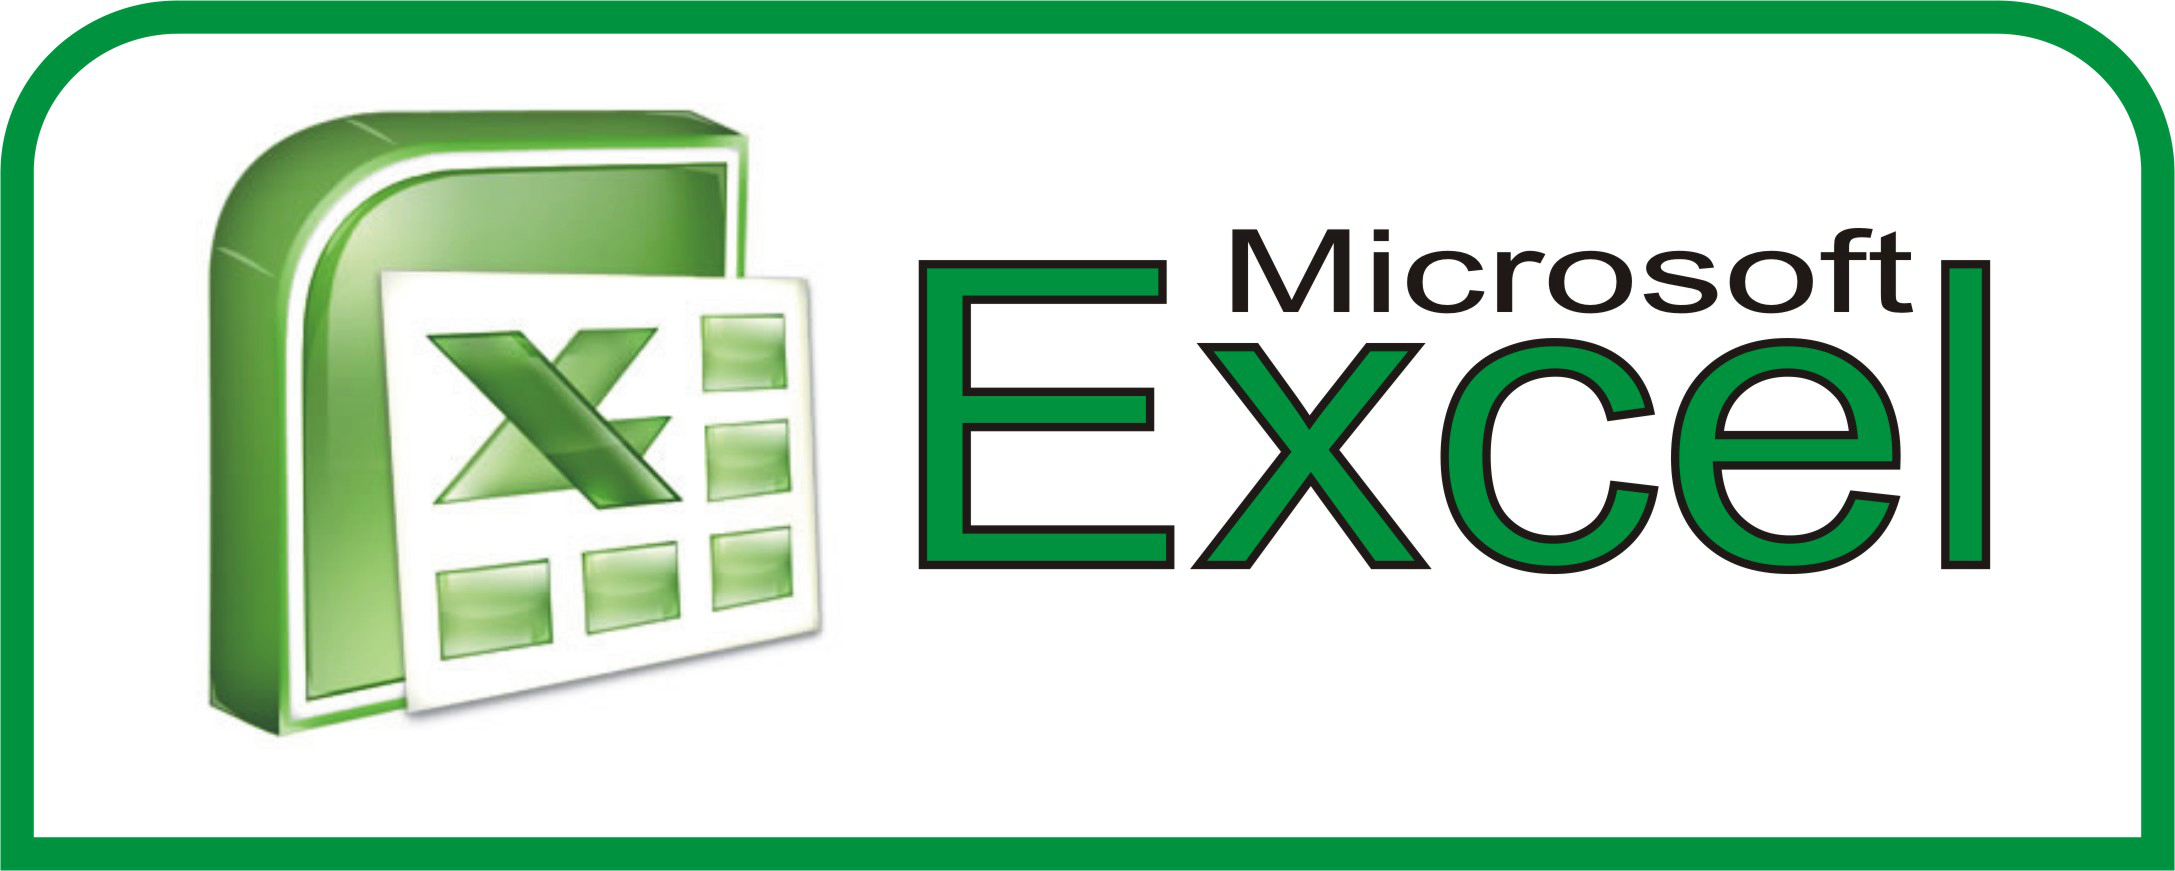 Ediblewildsus  Unique  Excel Shortcuts You Probably Didnt Know About  Techdissected With Excellent Harmonic Mean Excel Besides Pie Charts On Excel Furthermore Excel Macro Insert Column With Divine Meeting Schedule Template Excel Also Quadrant Graph In Excel In Addition Excel Compare Two Cells For Matches And Protect A Column In Excel As Well As Running Reports In Excel Additionally Microsoft Excel  Bit From Techdissectedcom With Ediblewildsus  Excellent  Excel Shortcuts You Probably Didnt Know About  Techdissected With Divine Harmonic Mean Excel Besides Pie Charts On Excel Furthermore Excel Macro Insert Column And Unique Meeting Schedule Template Excel Also Quadrant Graph In Excel In Addition Excel Compare Two Cells For Matches From Techdissectedcom